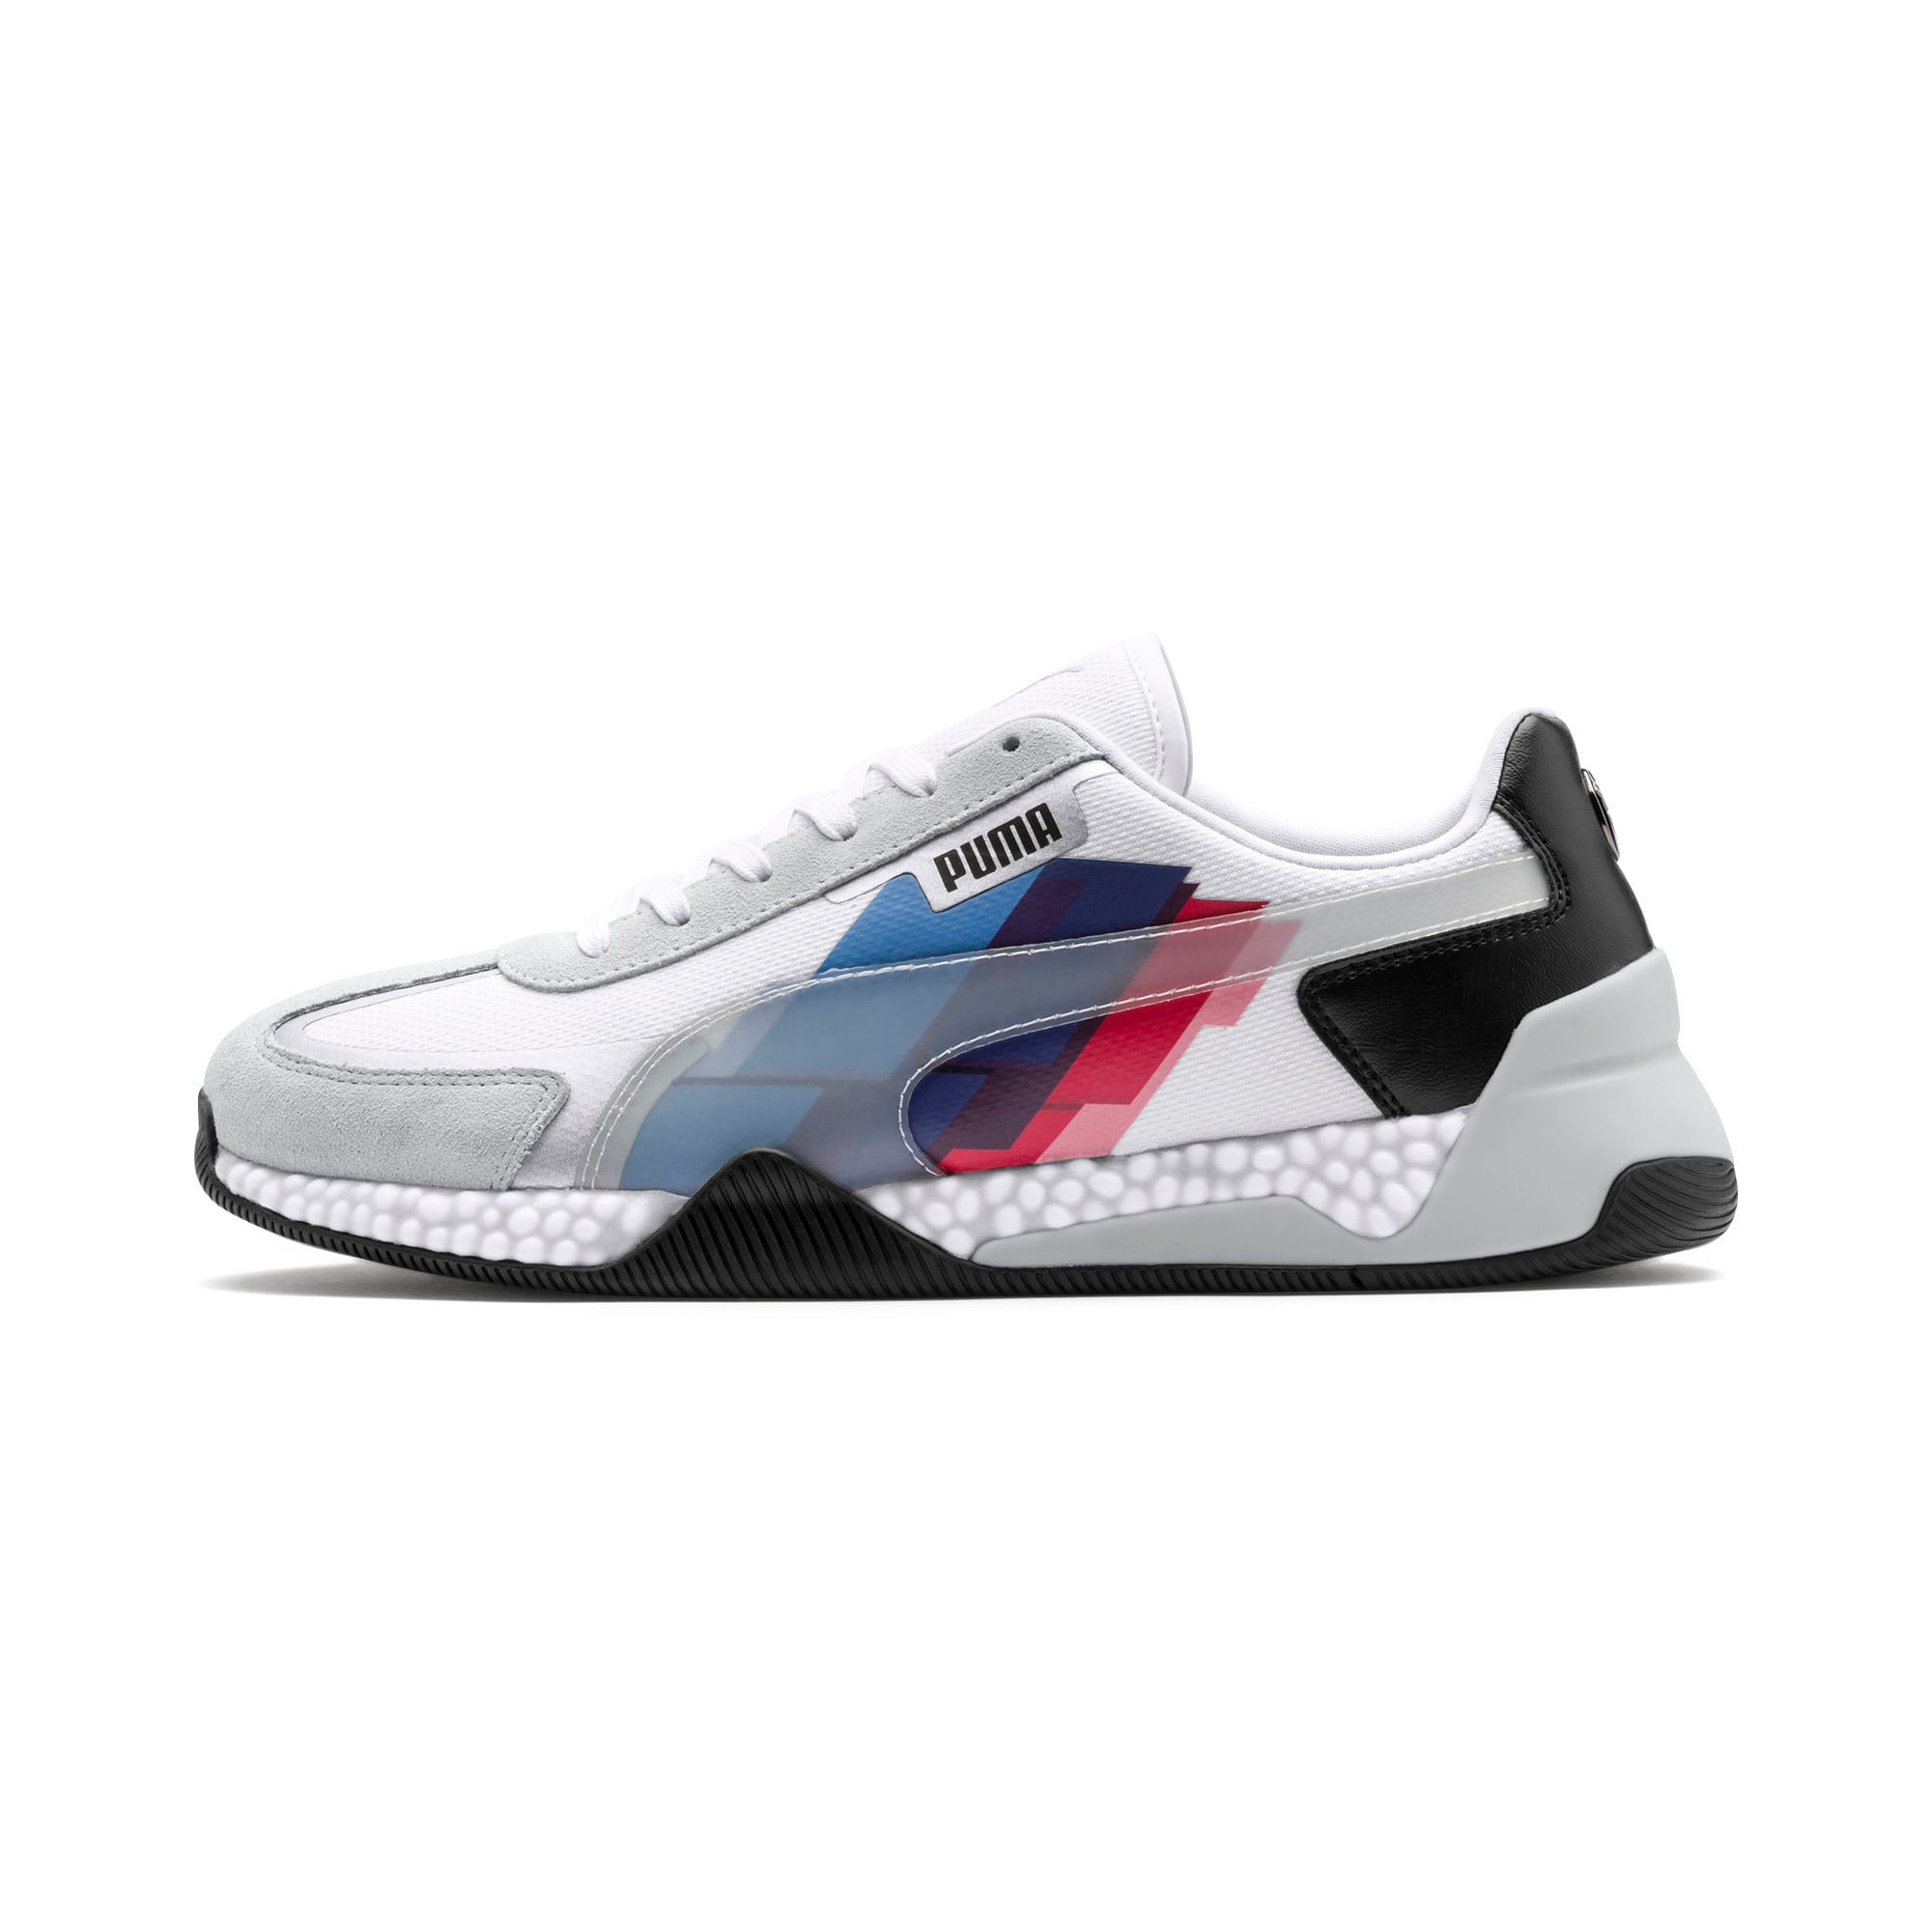 Miniatura 1 de Zapatos para correr BMW M Motorsport Speed HYBRID, White-Glacier Gray-Black, mediano